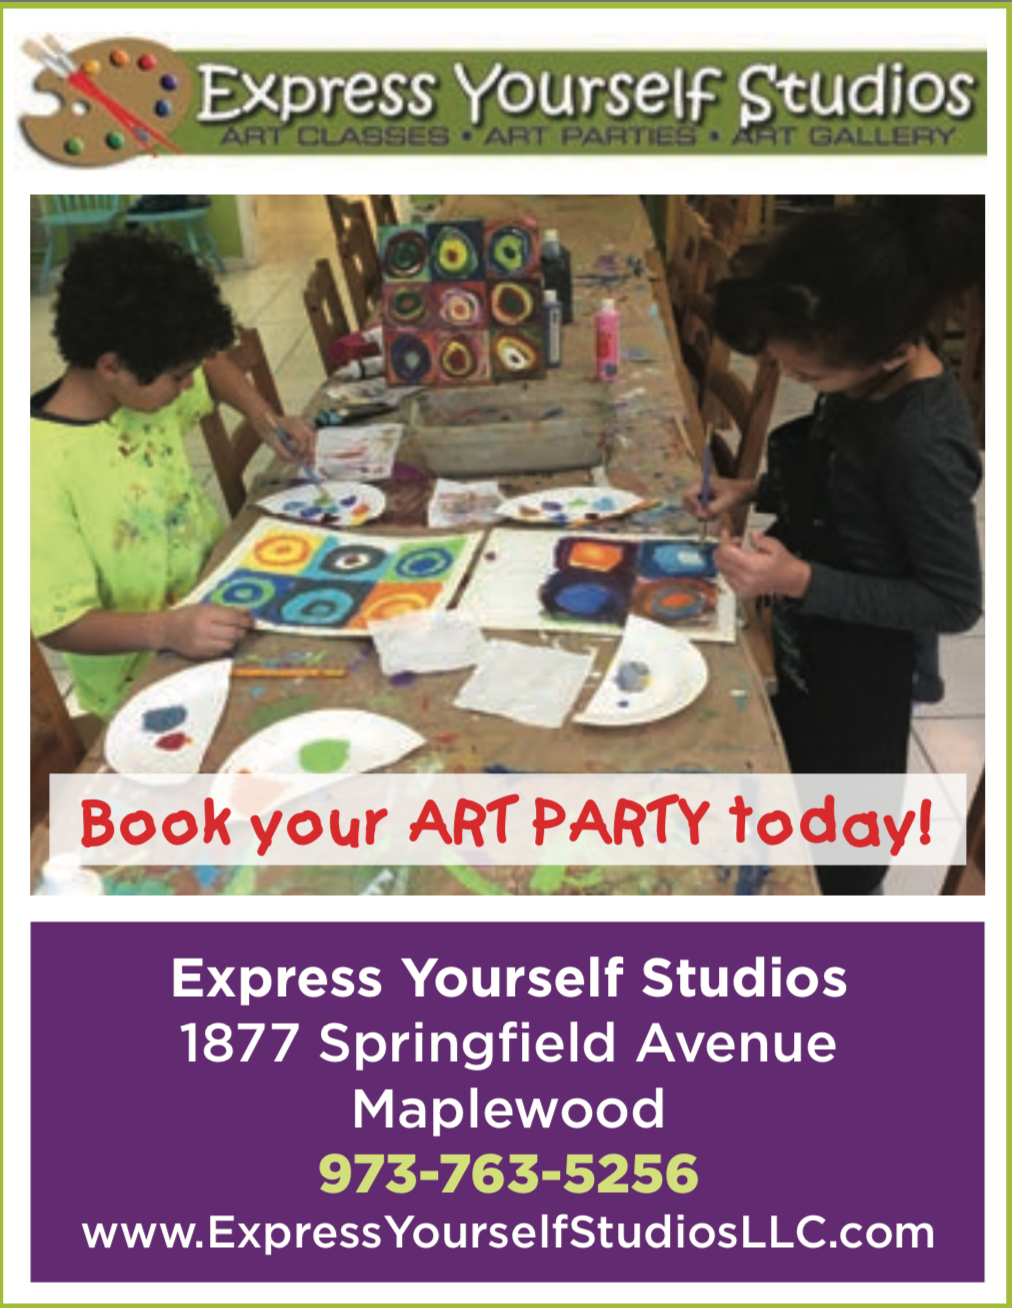 Planning a birthday party?  Make it an art party at Express Yourself Studios!